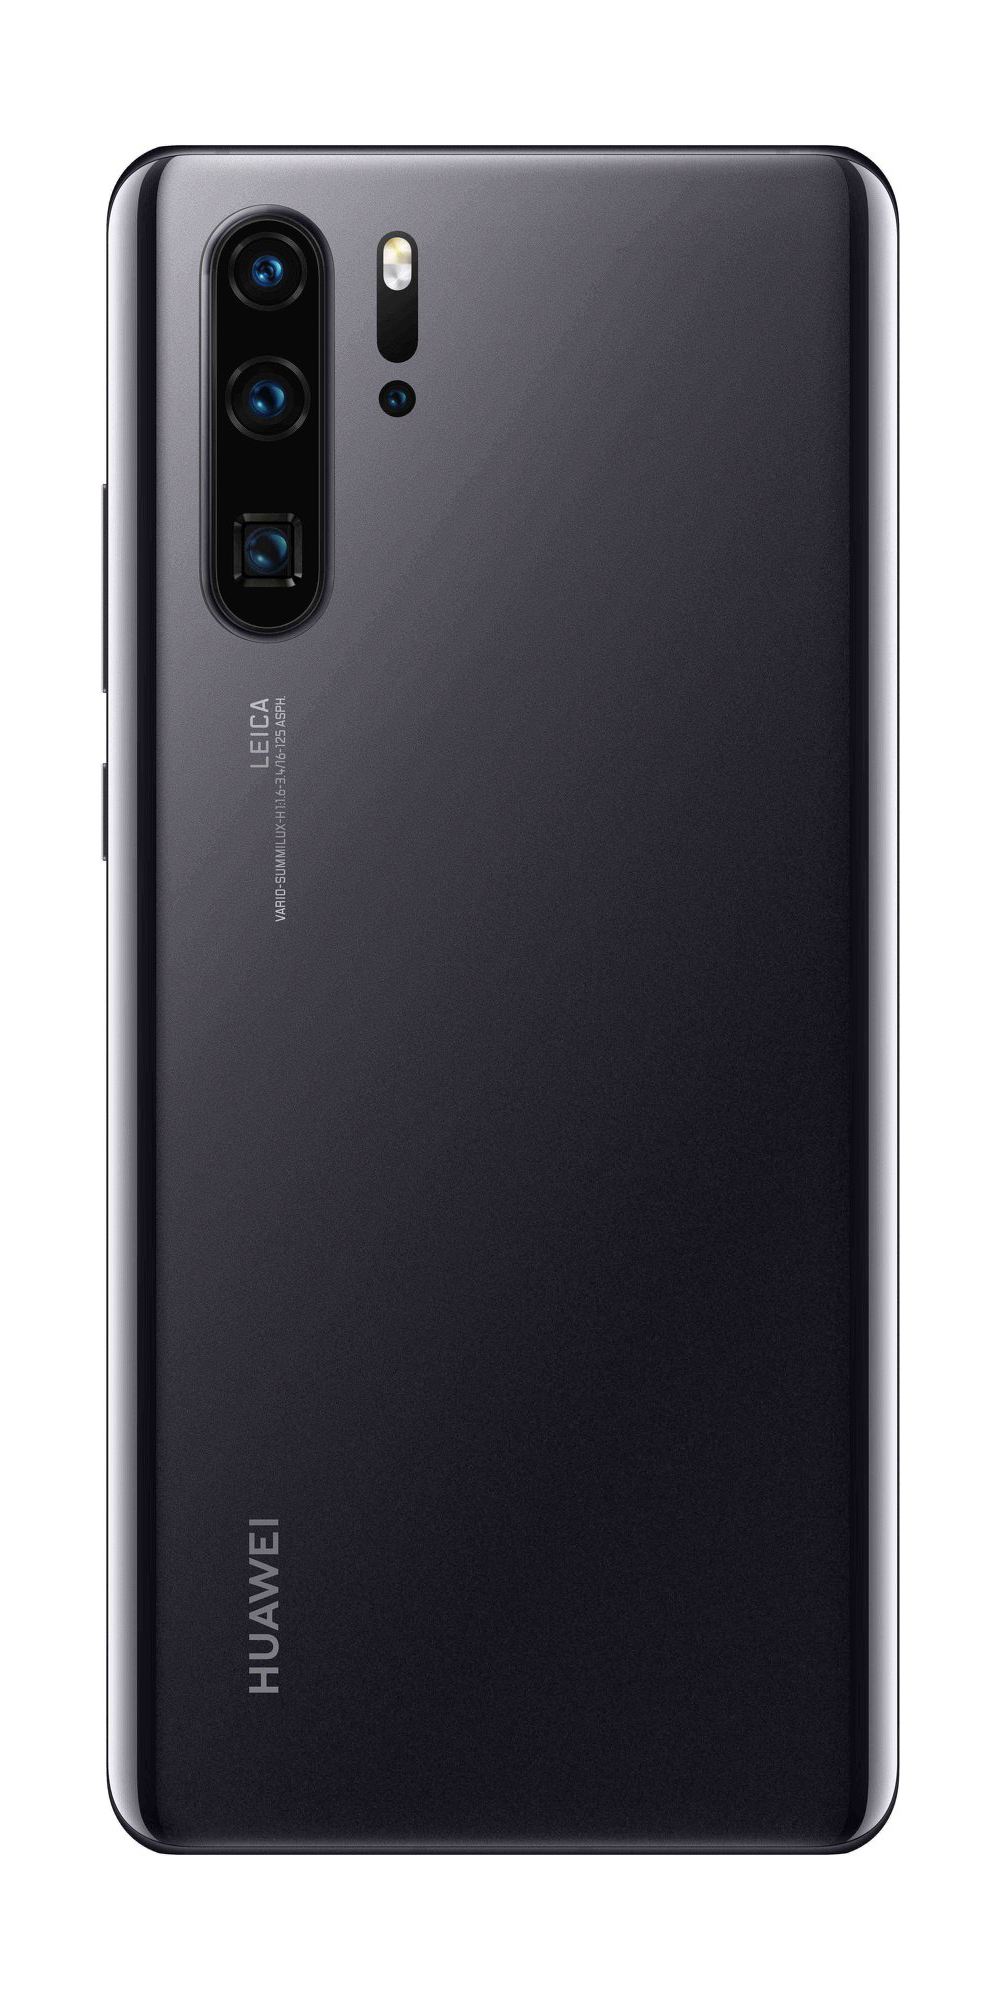 Huawei P30 series goes official with 10x hybrid zoom - 9to5Google